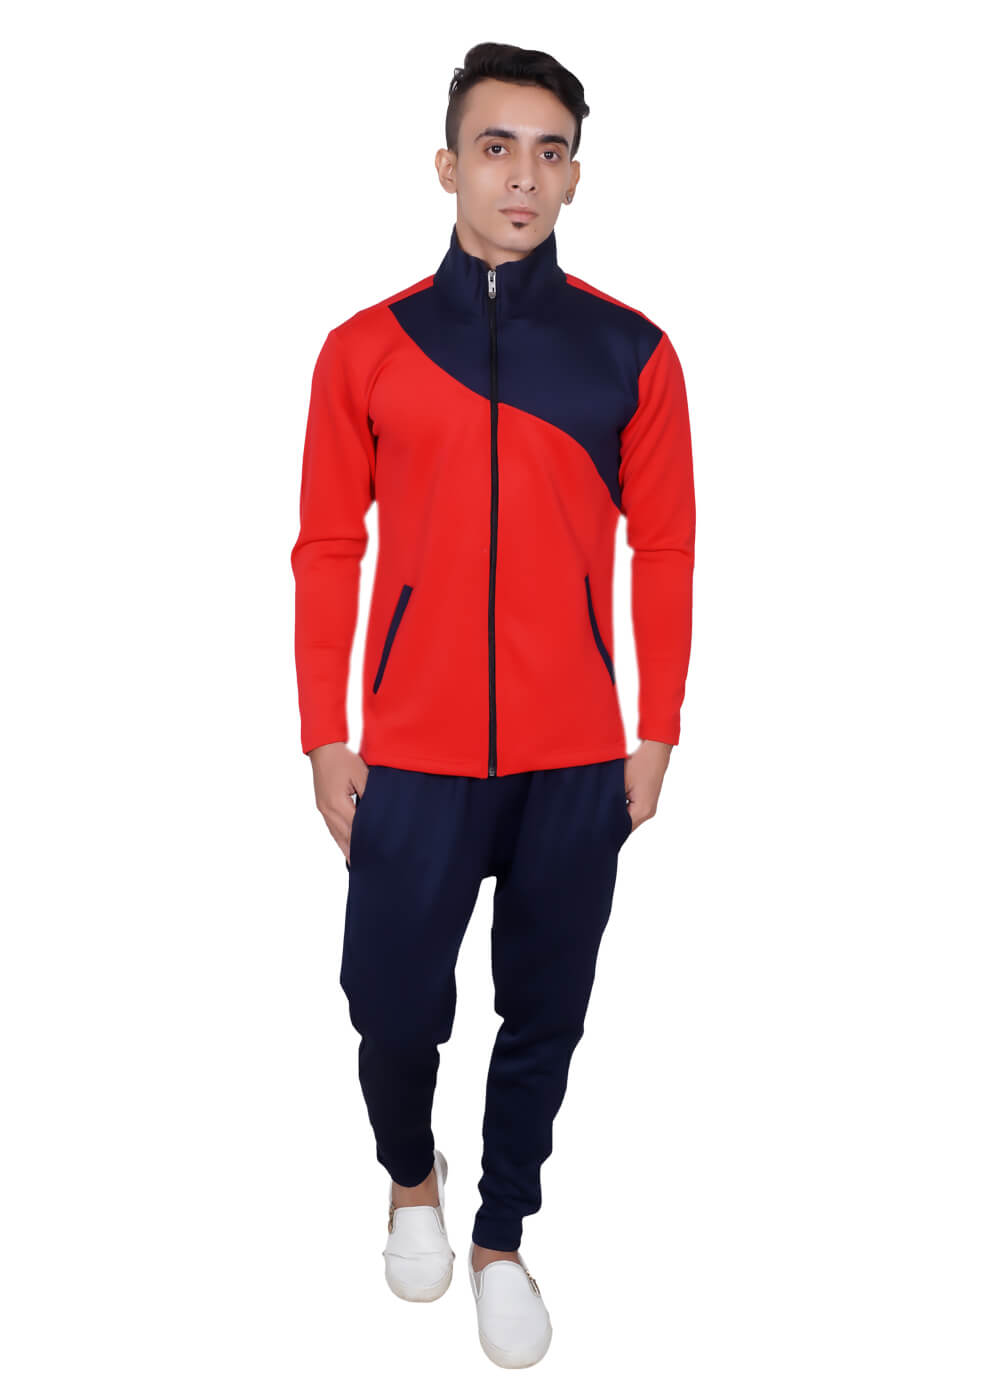 Cheap Tracksuits Manufacturers in Meerut